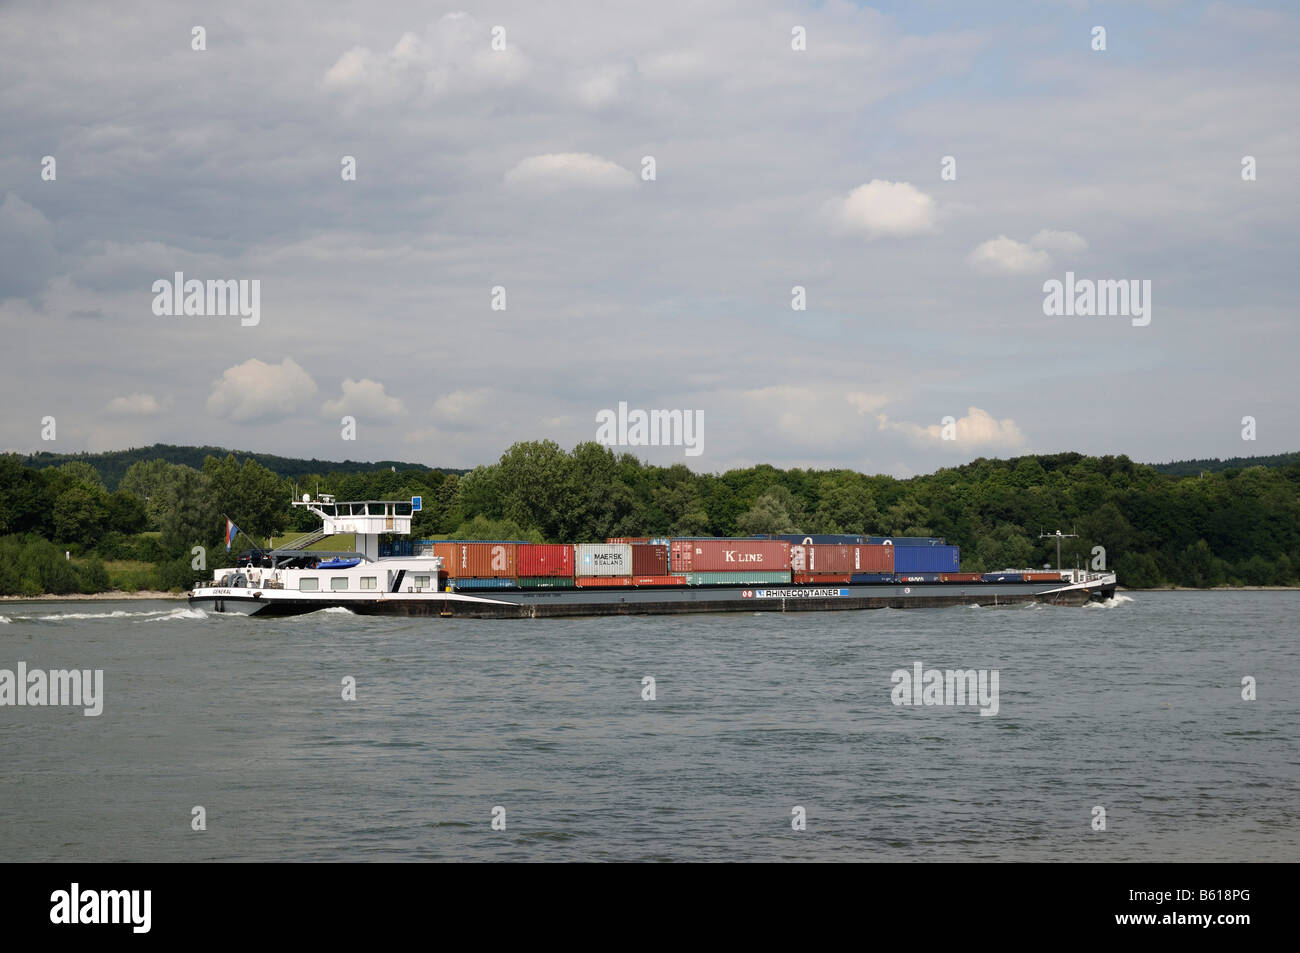 Container ship General on the Rhine River near Bonn, North Rhine-Westphalia - Stock Image